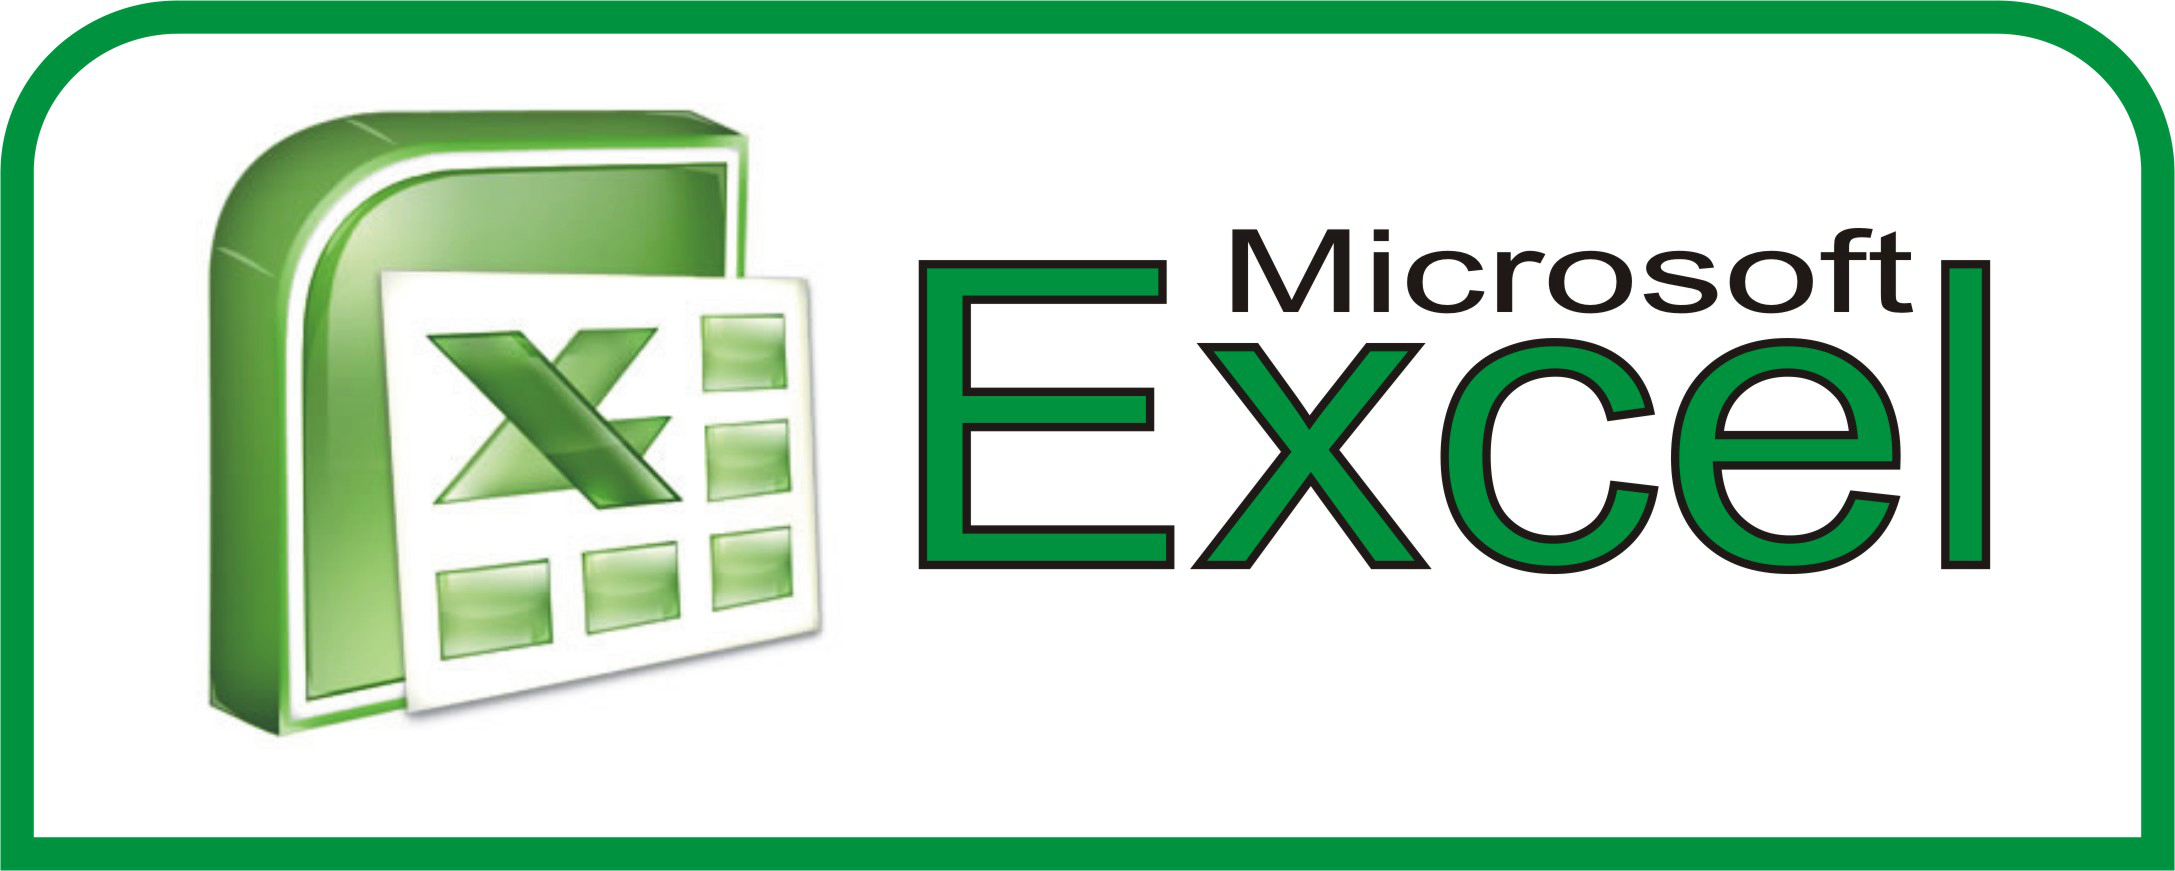 Ediblewildsus  Sweet  Excel Shortcuts You Probably Didnt Know About  Techdissected With Licious Headers In Excel Besides Excel Create Chart Furthermore Excel Check If Cell Is Empty With Awesome Excel Work Schedule Template Also Power Map Excel  In Addition Advanced Excel Tutorial And Count Values In Excel As Well As F In Excel Additionally Create Checklist In Excel From Techdissectedcom With Ediblewildsus  Licious  Excel Shortcuts You Probably Didnt Know About  Techdissected With Awesome Headers In Excel Besides Excel Create Chart Furthermore Excel Check If Cell Is Empty And Sweet Excel Work Schedule Template Also Power Map Excel  In Addition Advanced Excel Tutorial From Techdissectedcom